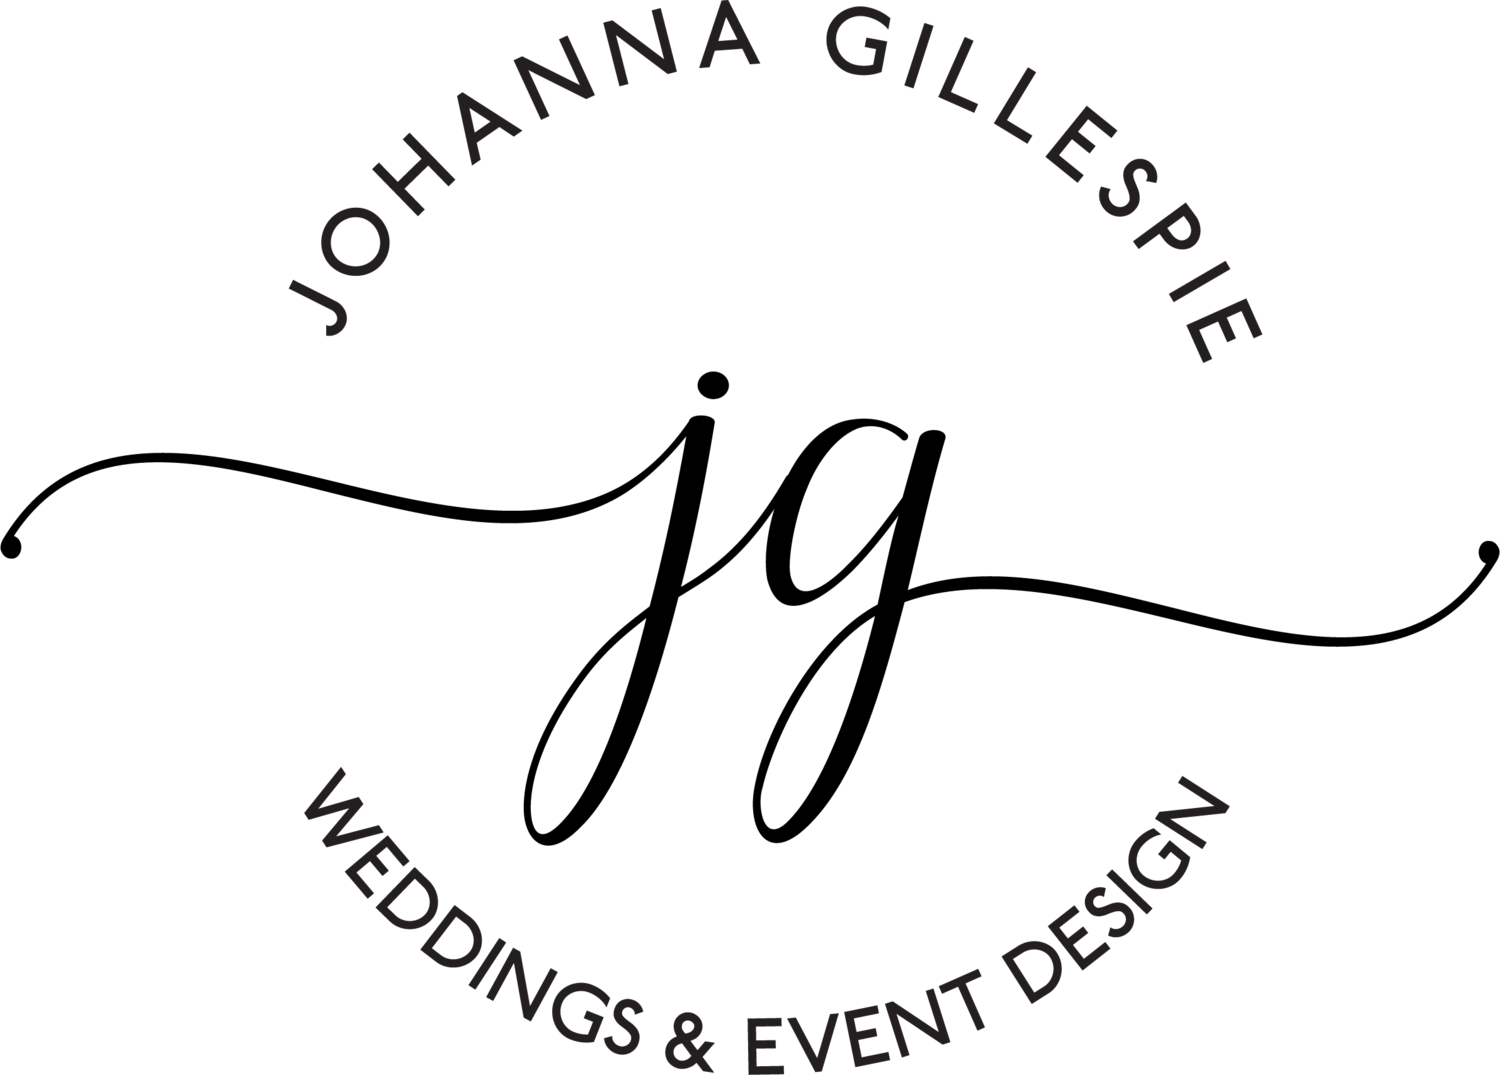 Events by Johanna